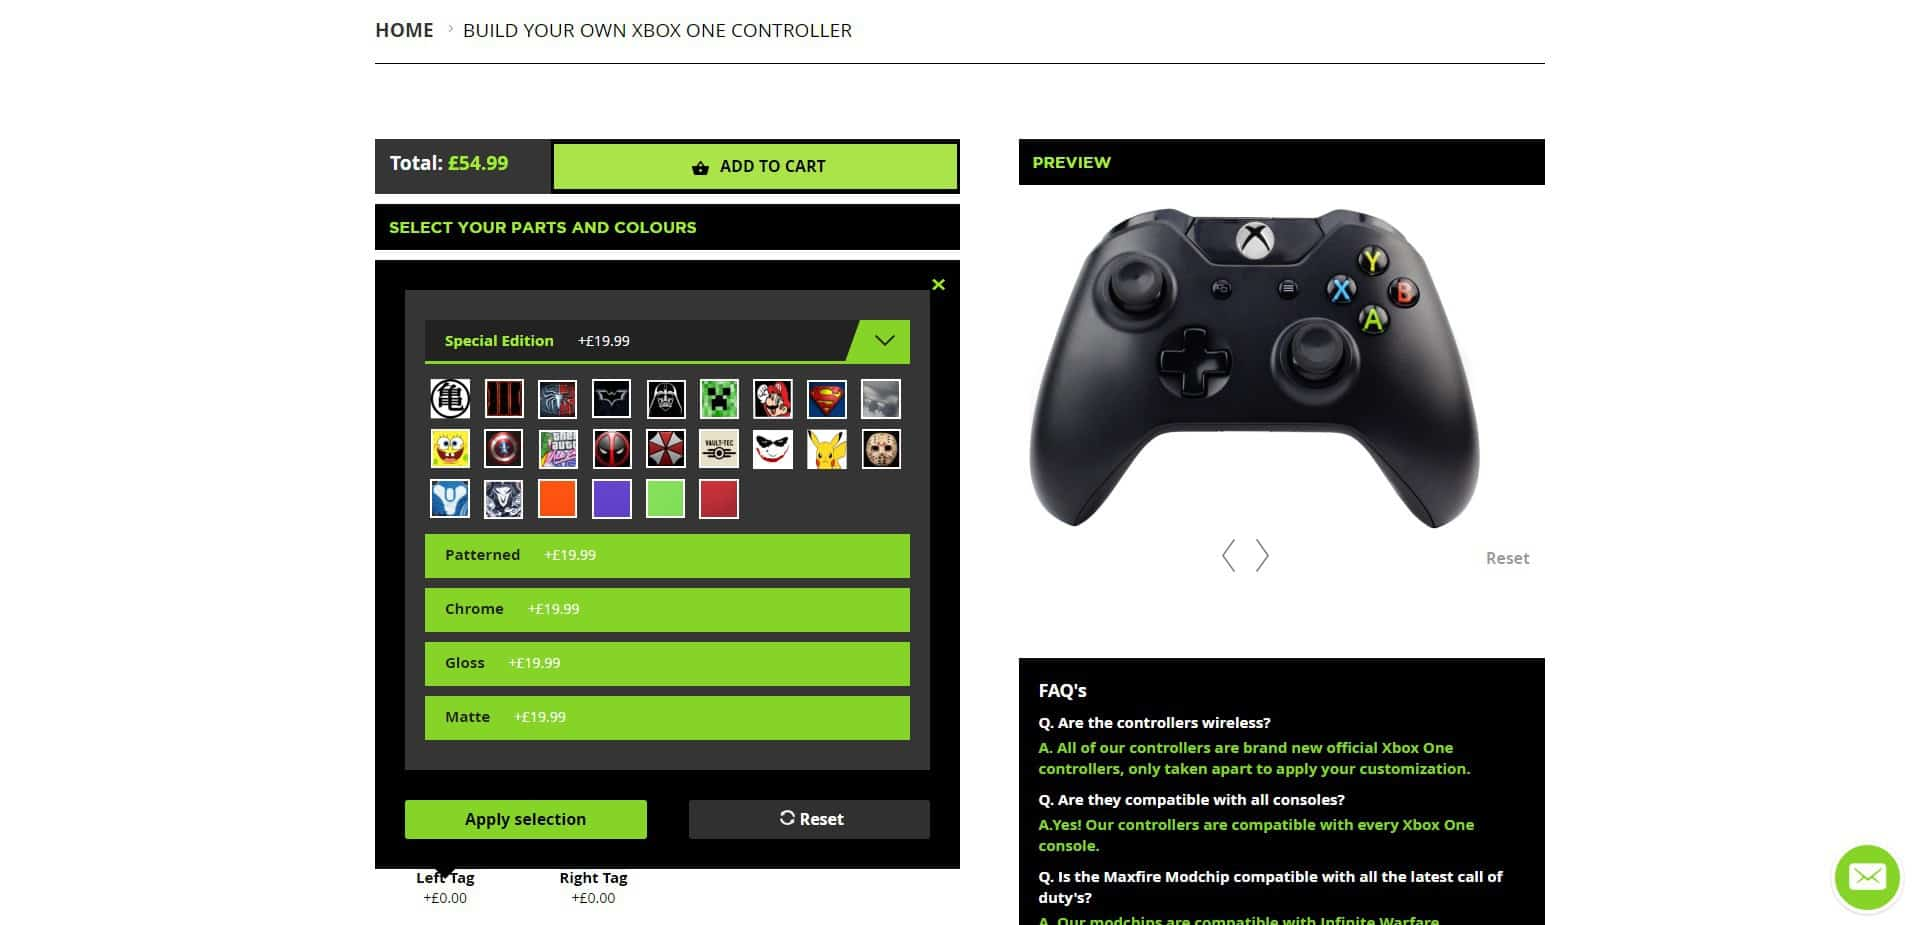 shell Controller Modz Modded Xbox One Controller Review